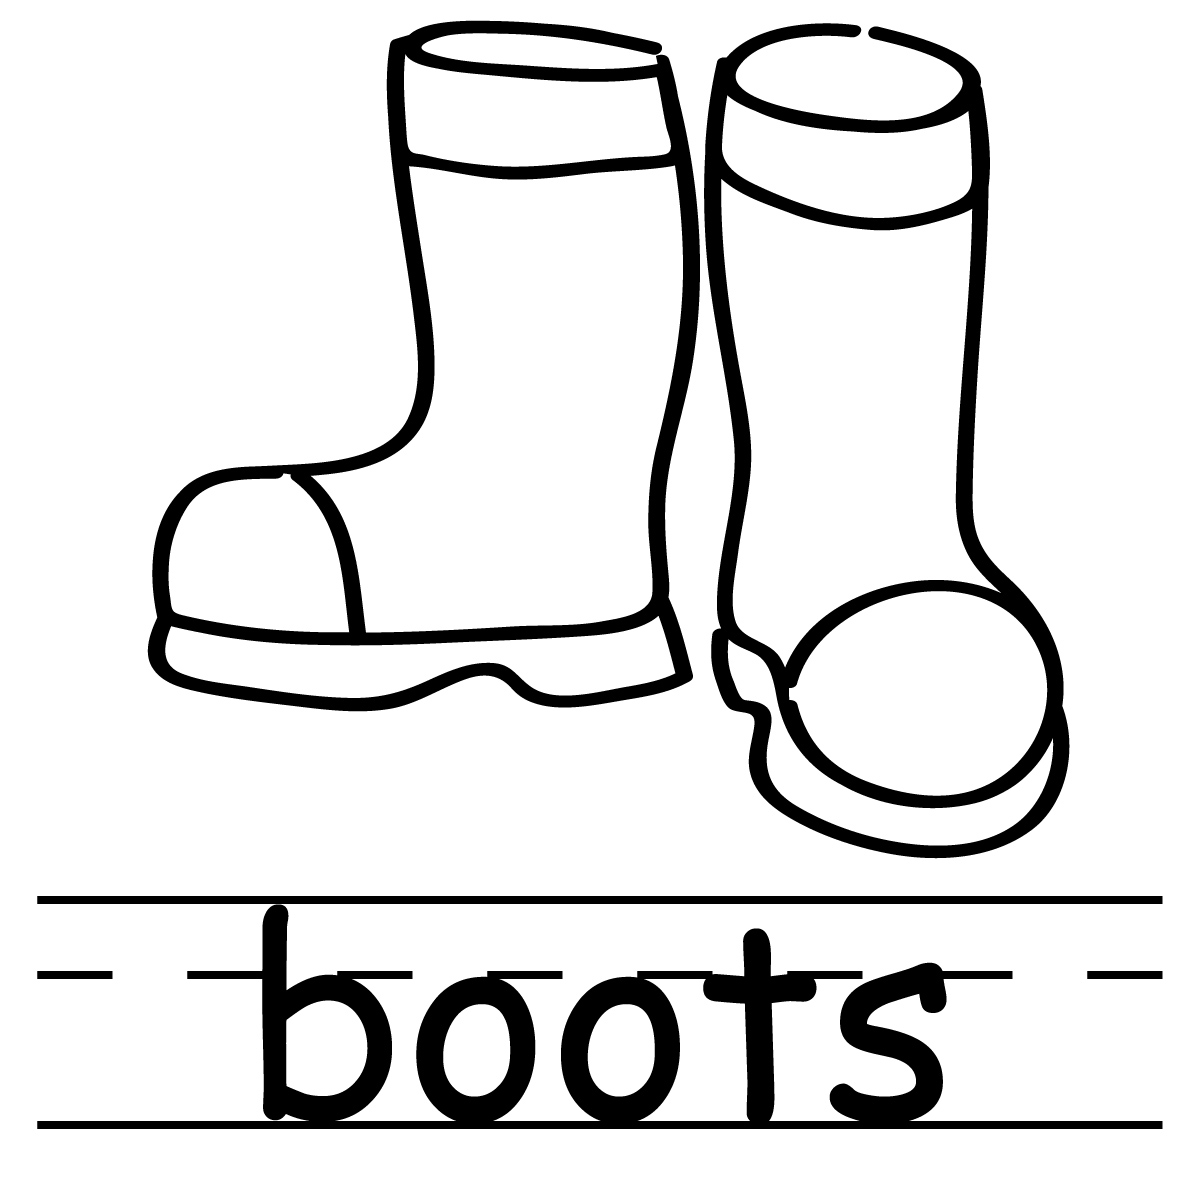 Rain Boots Clipart Black And White.